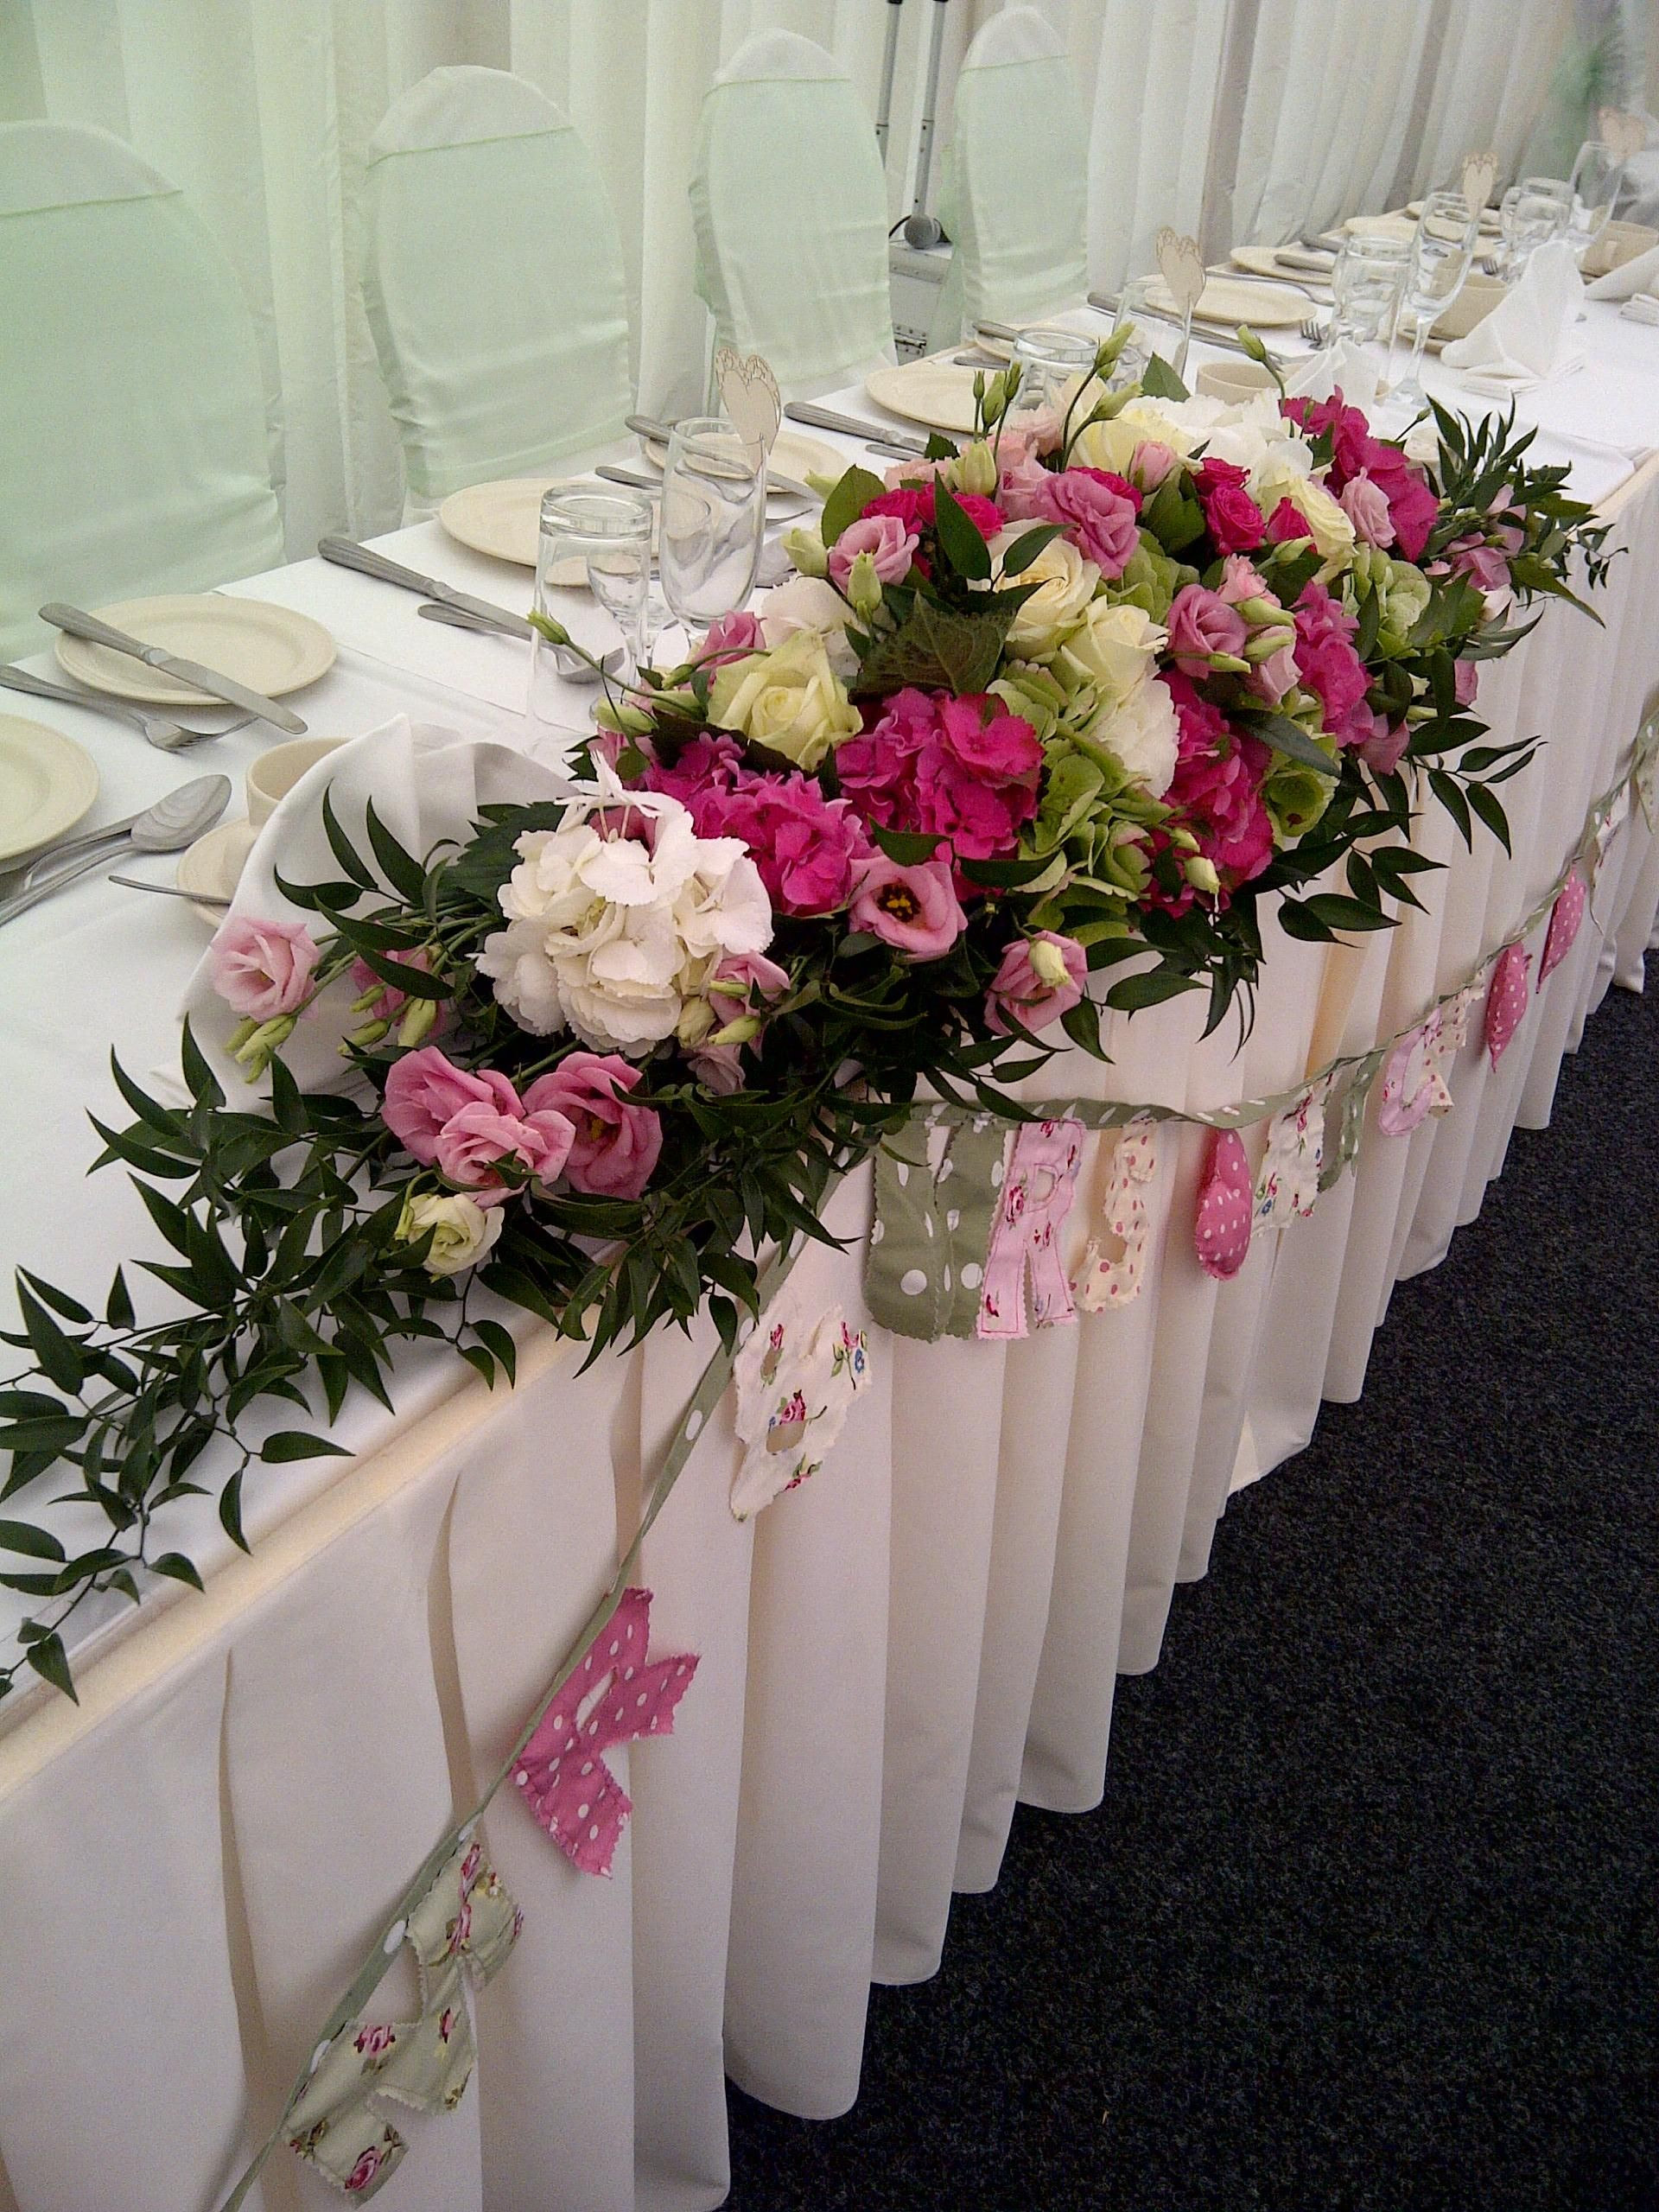 Flower table decorations - White Vase Coral Flowers Wedding Reception Wedding Flower Table Arrangements